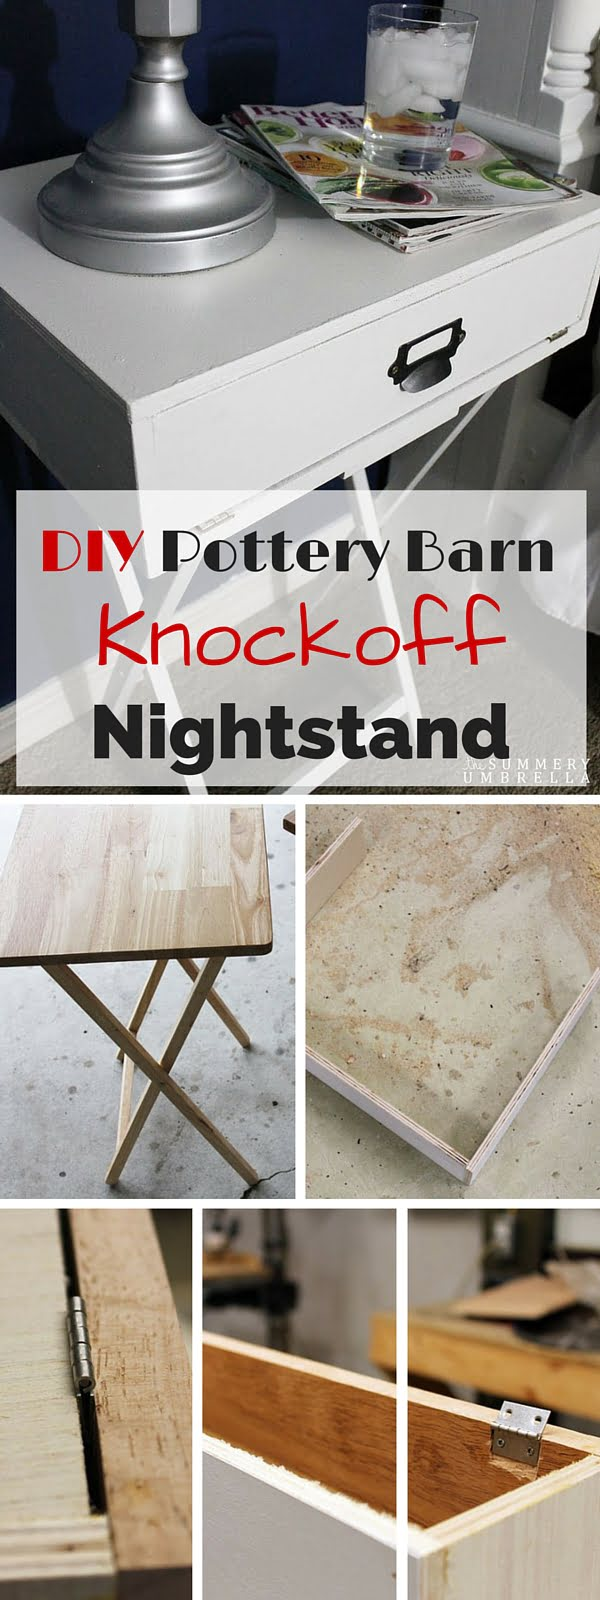 Check out the tutorial: #DIY Pottery Barn Nightstand #crafts #homedecor